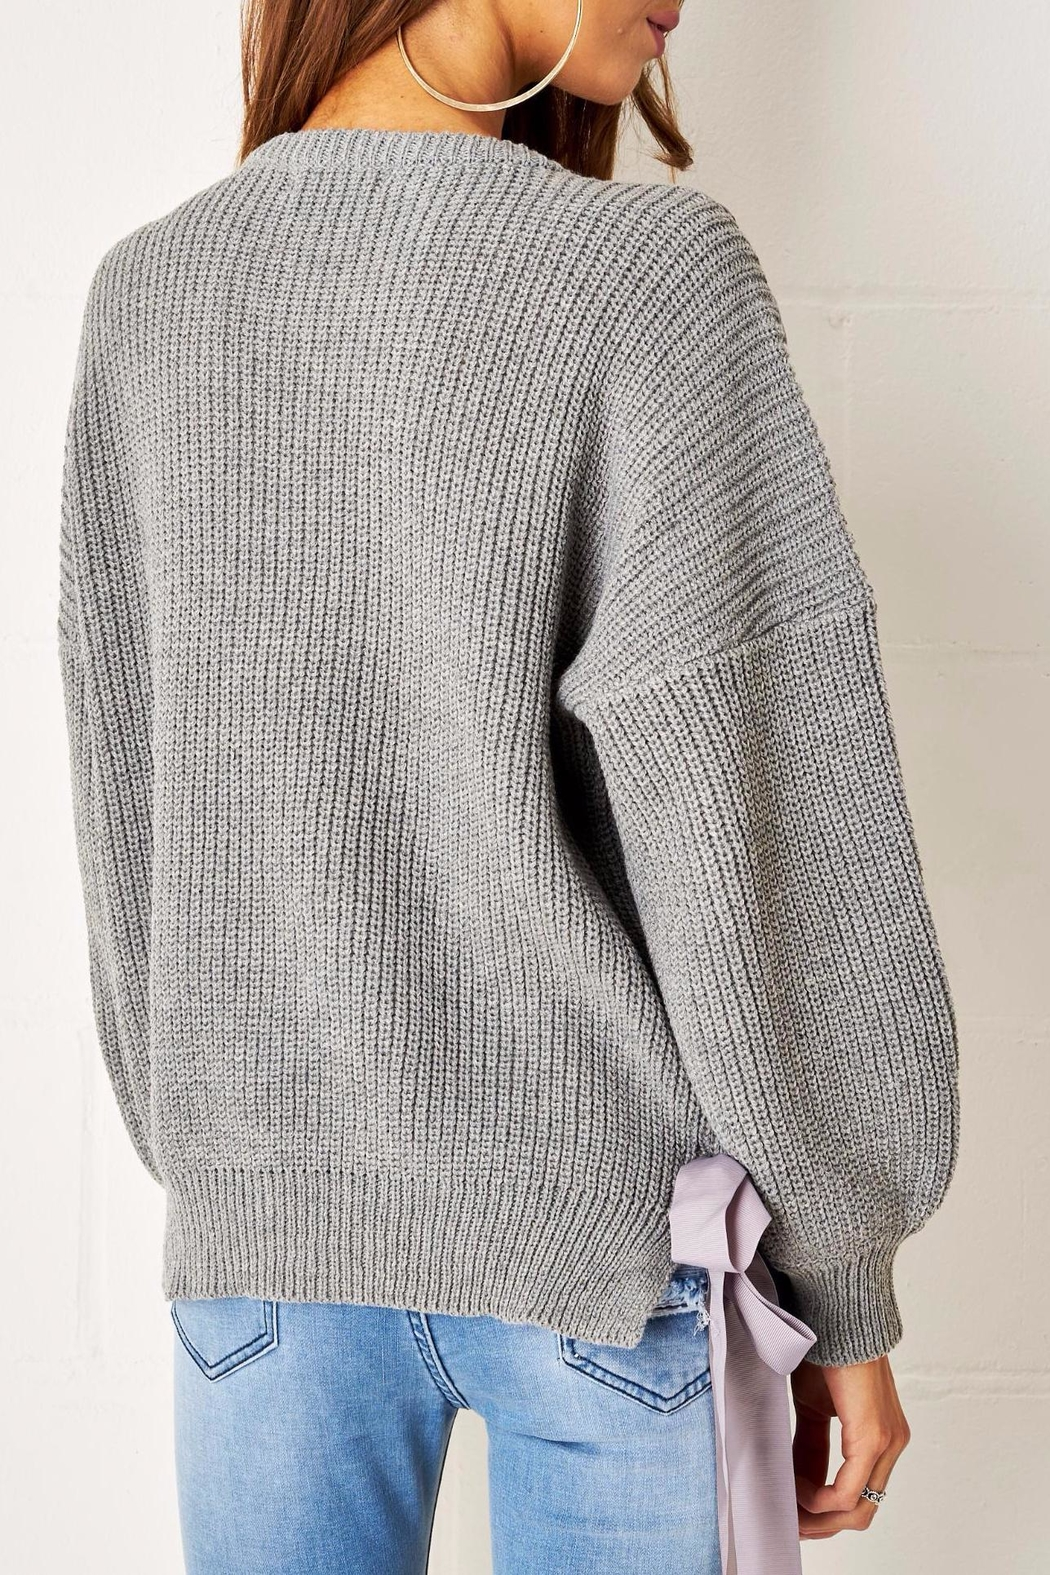 frontrow Grey Lace Up Jumper - Side Cropped Image